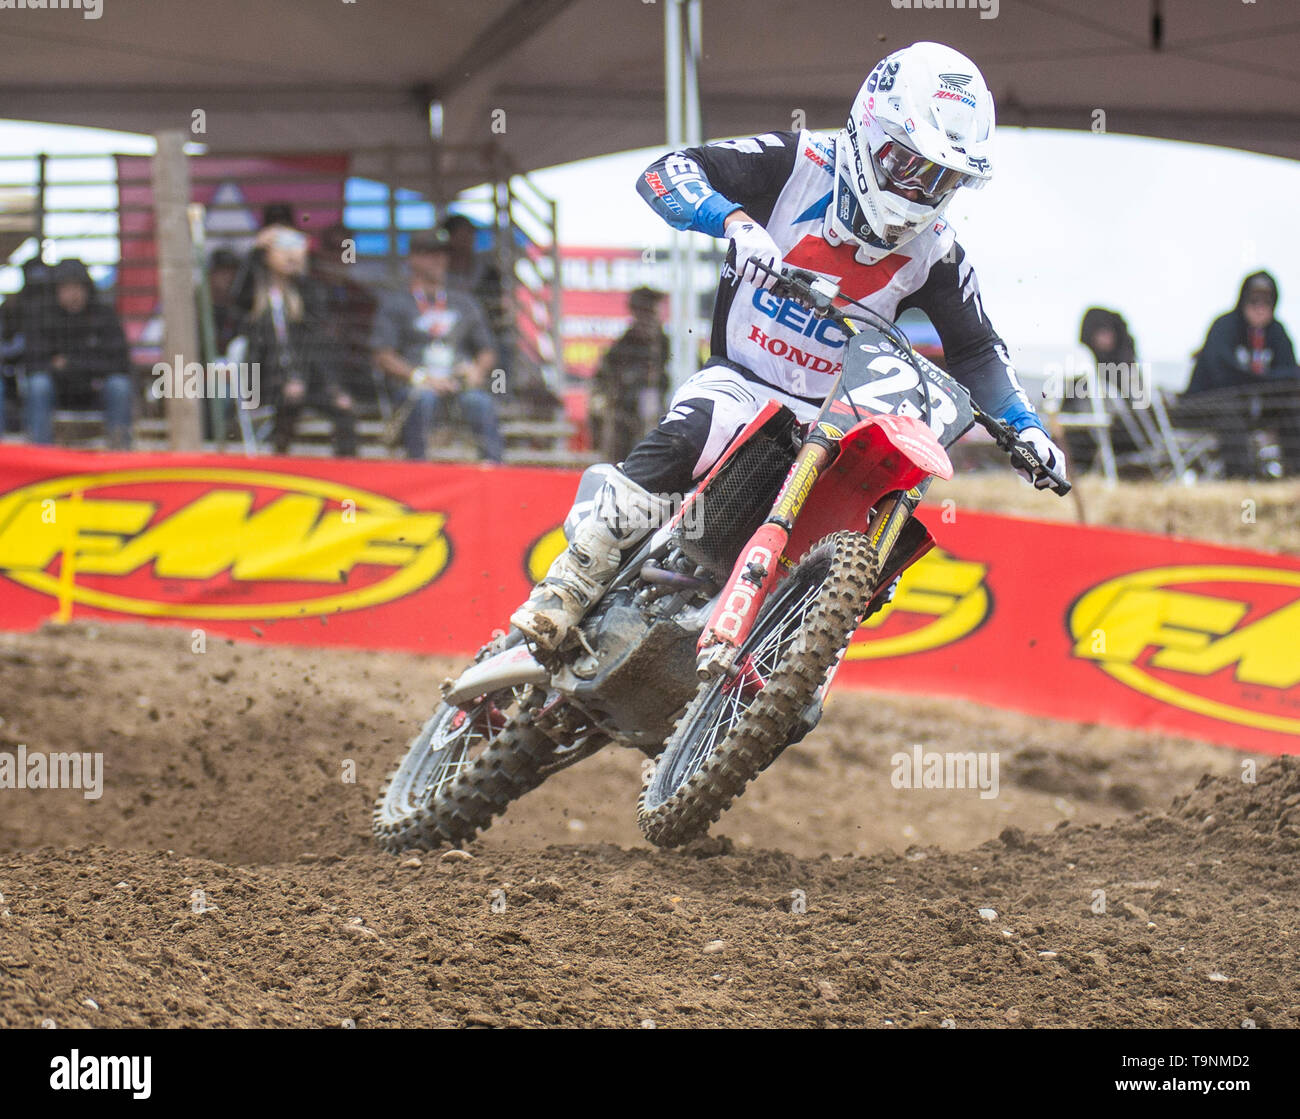 Rancho Cordova, CA U.S. 18th May, 2019. A. : # 23 Chase Sexton coming out of turn 18 during the Lucas Oil Pro Motocross Championship 250 class moto # 1 at Hangtown Motocross Classic Rancho Cordova, CA Thurman James/CSM/Alamy Live News - Stock Image